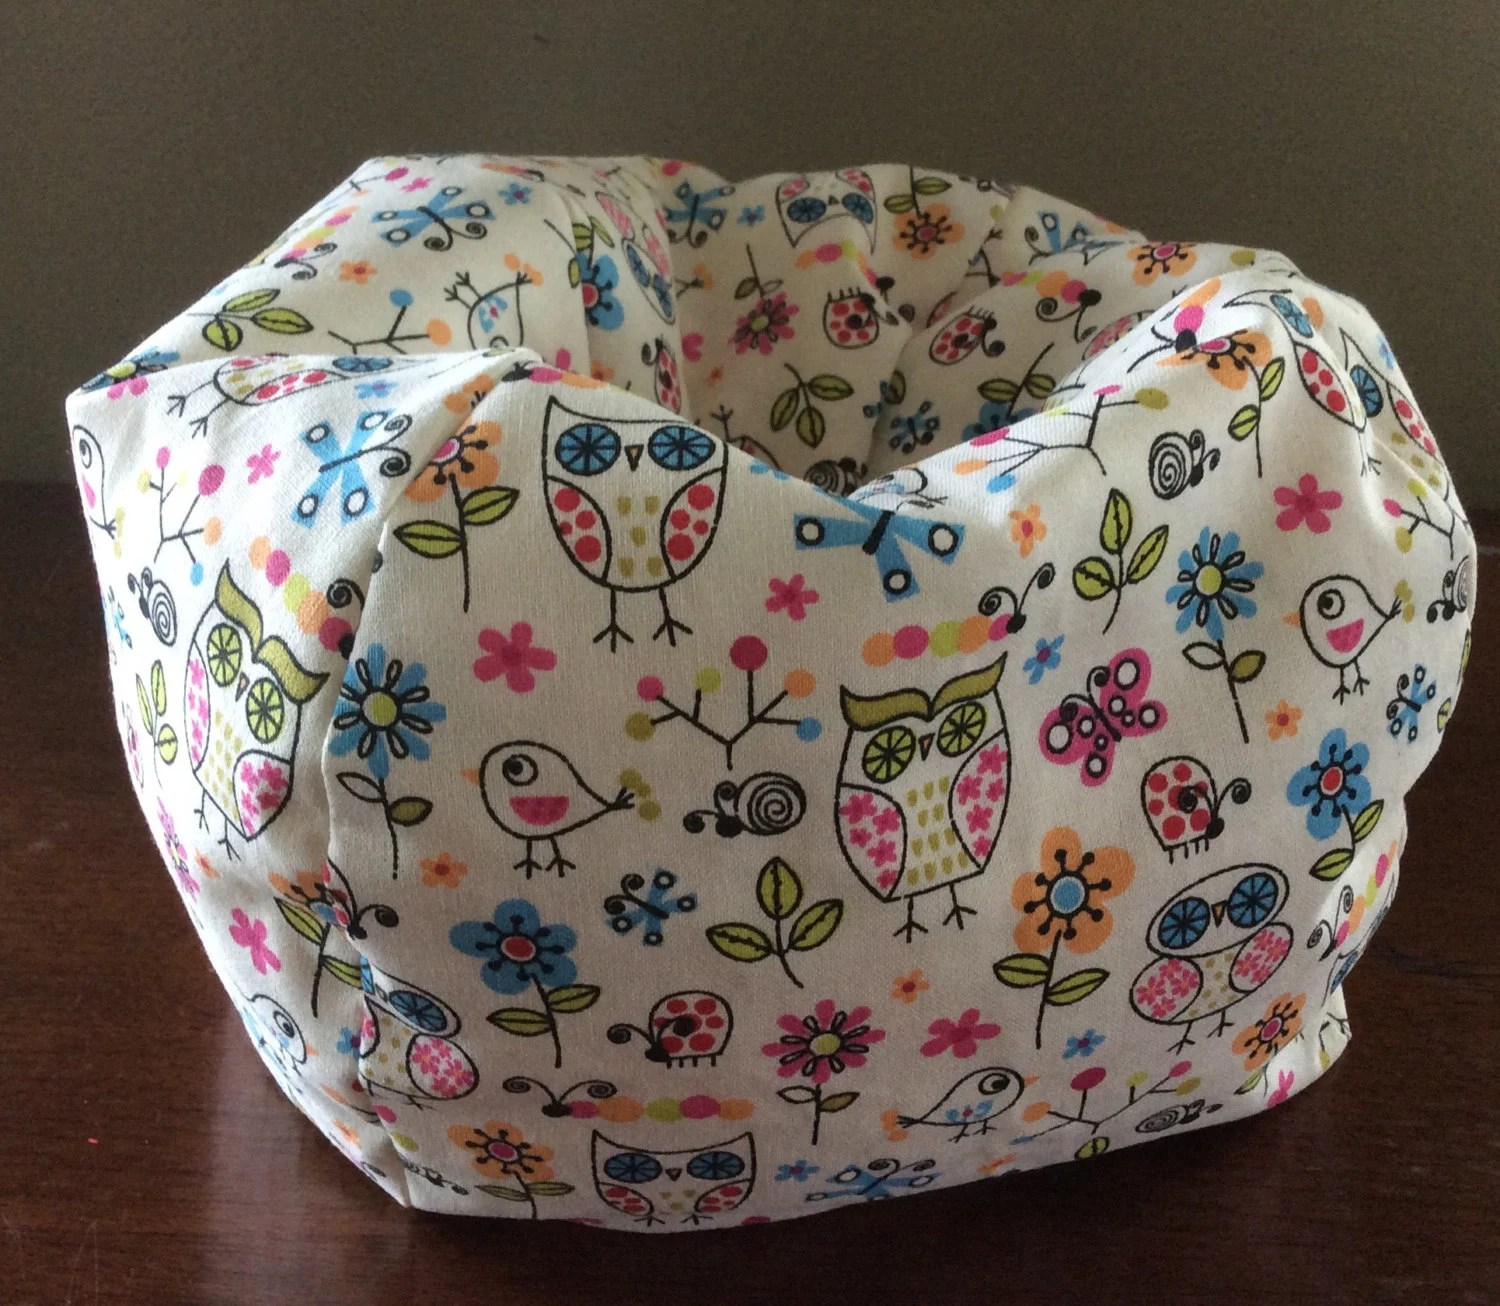 girls bean bag chairs antique koken barber chair parts american girl doll or 18 owls